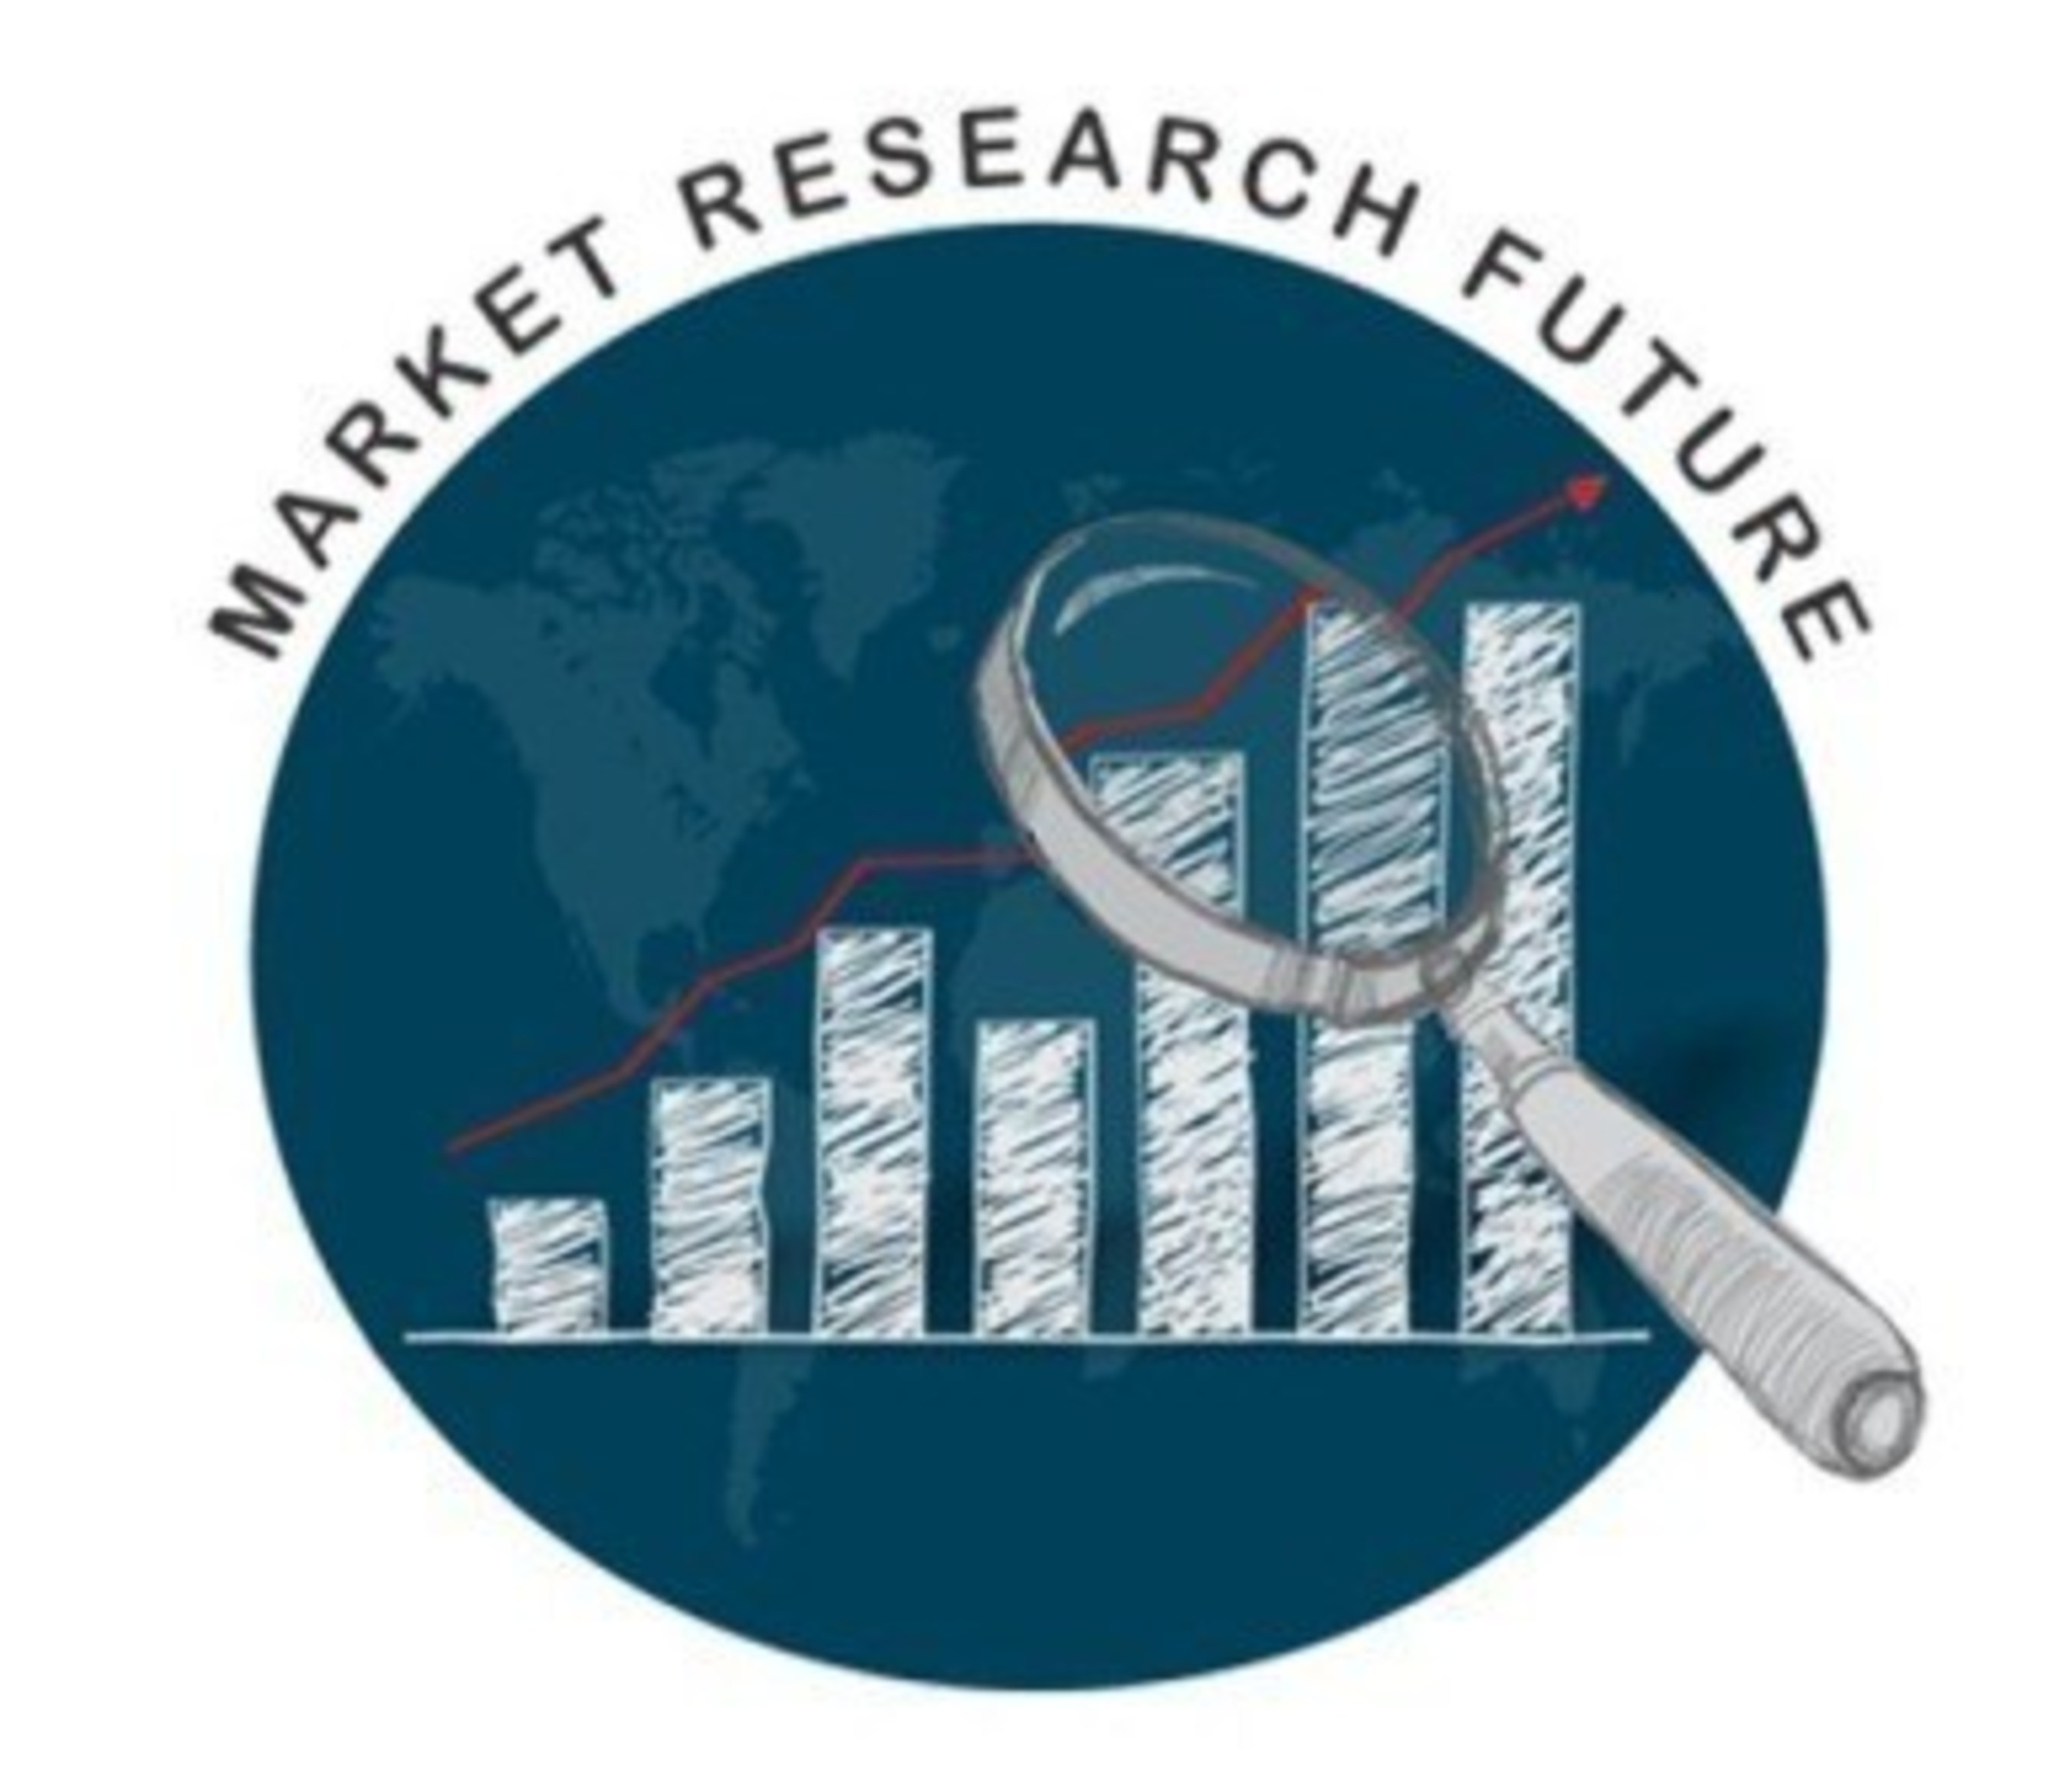 Data Lakes Market by Software and Services, Industry Structure, Distribution Type and Region - Forecast to 2022